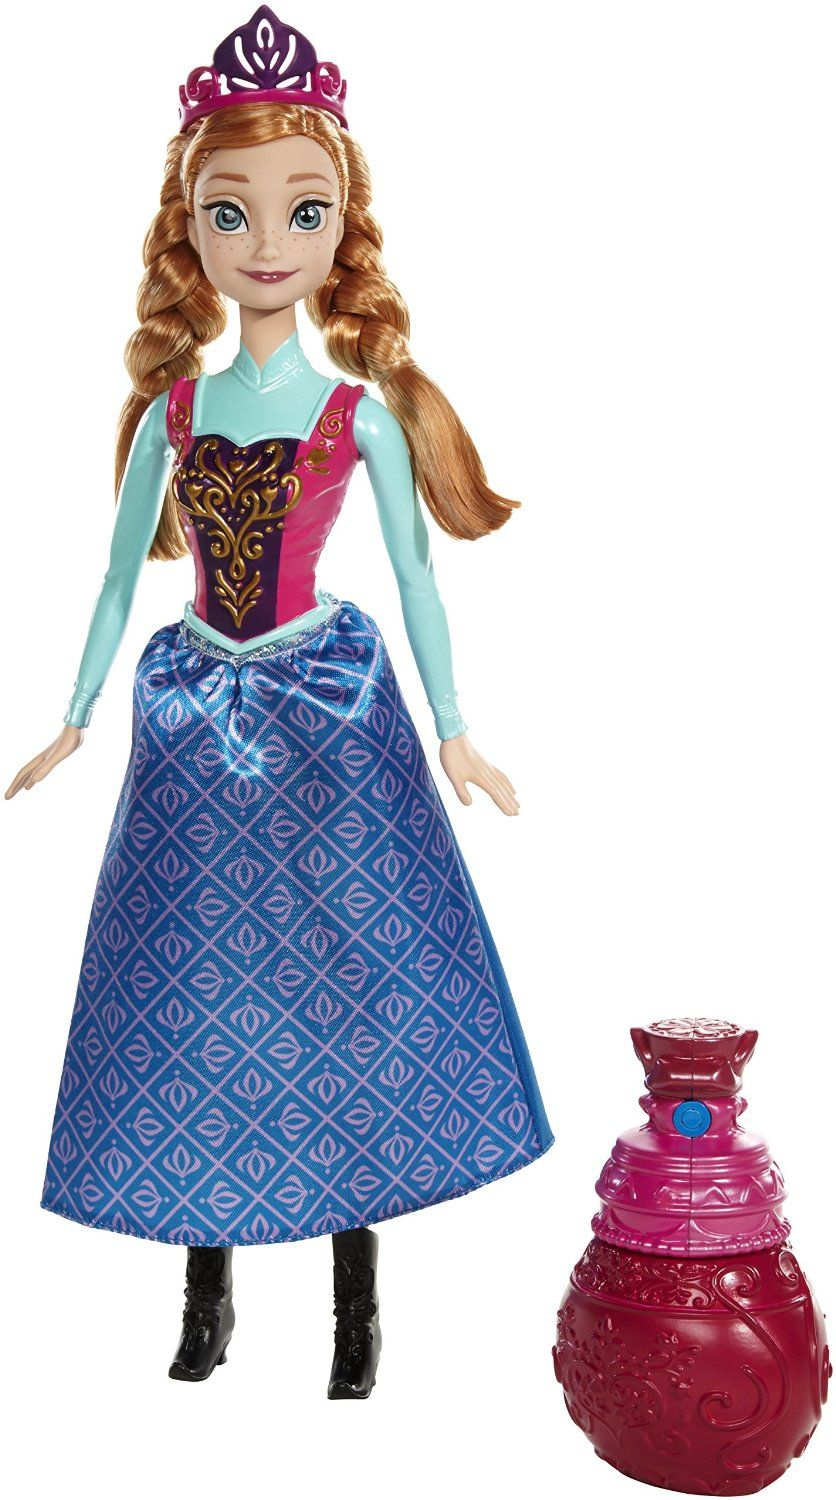 Discover the magic of Frozen's royal sisters and the